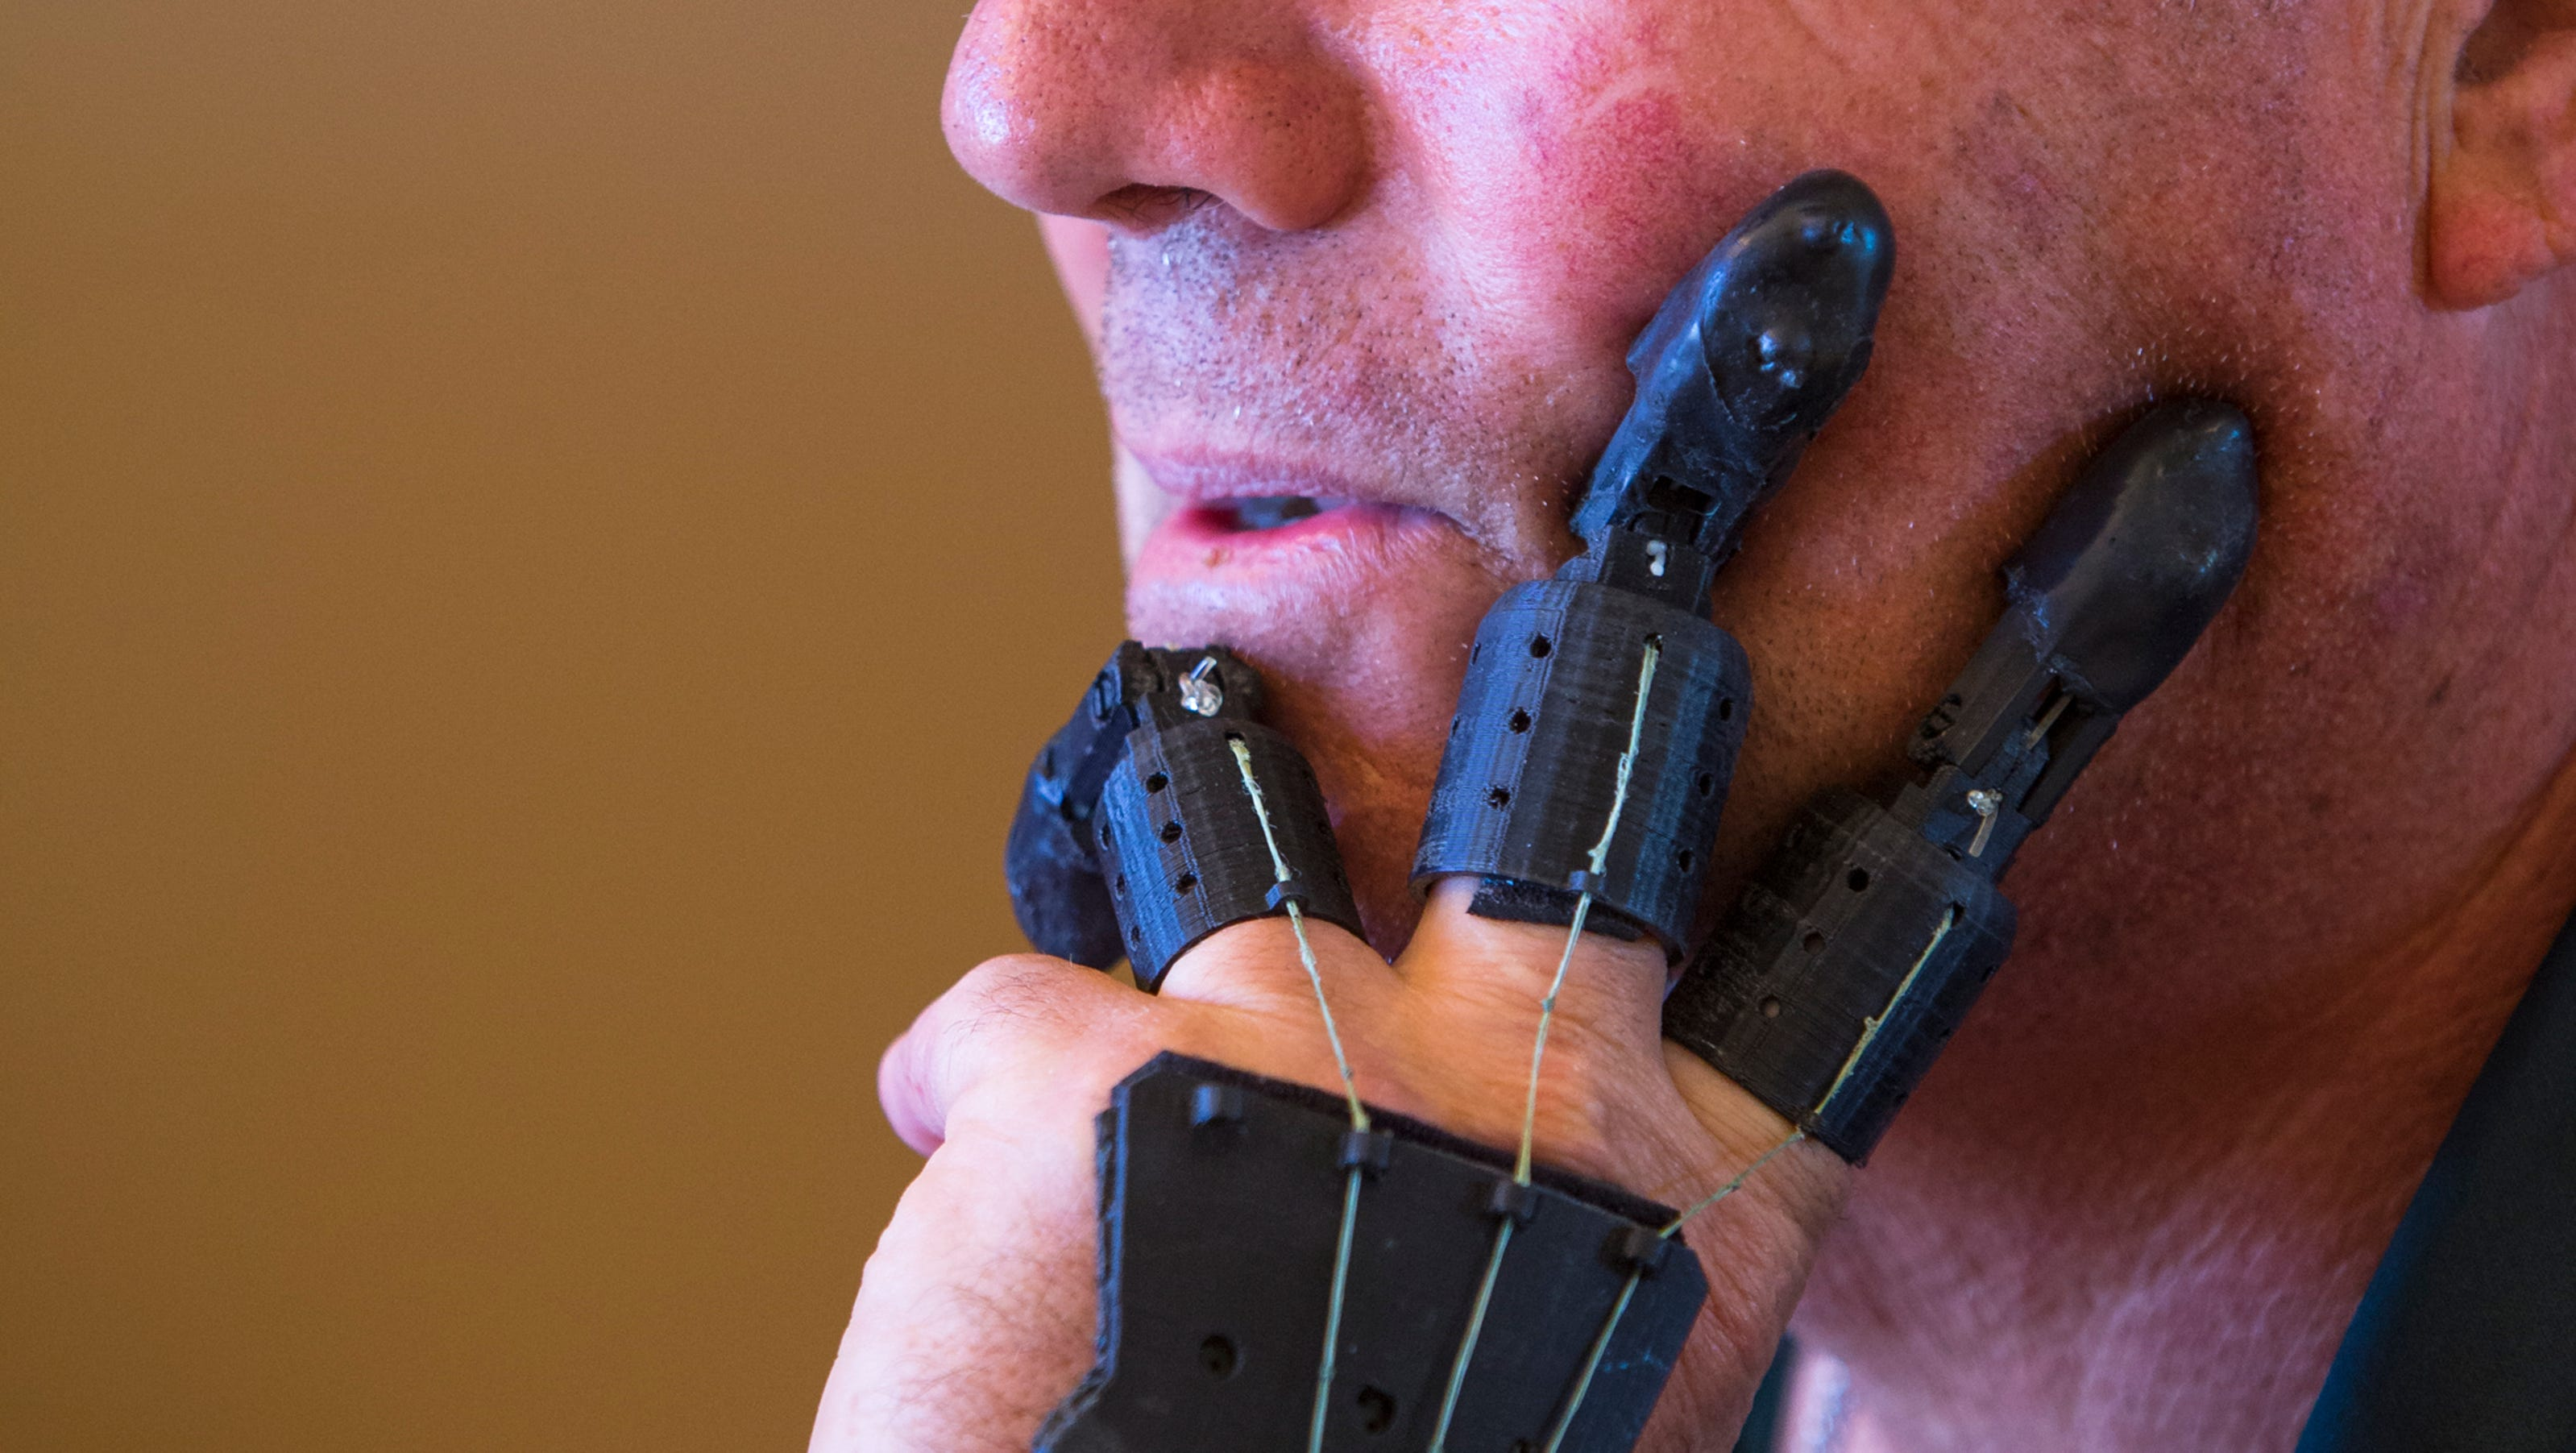 finger prothesis Dan didrick is the inventor of x-fingers, stainless steel prosthetic fingers in which each digit contains 23 moving parts or more for those without residual fingers.